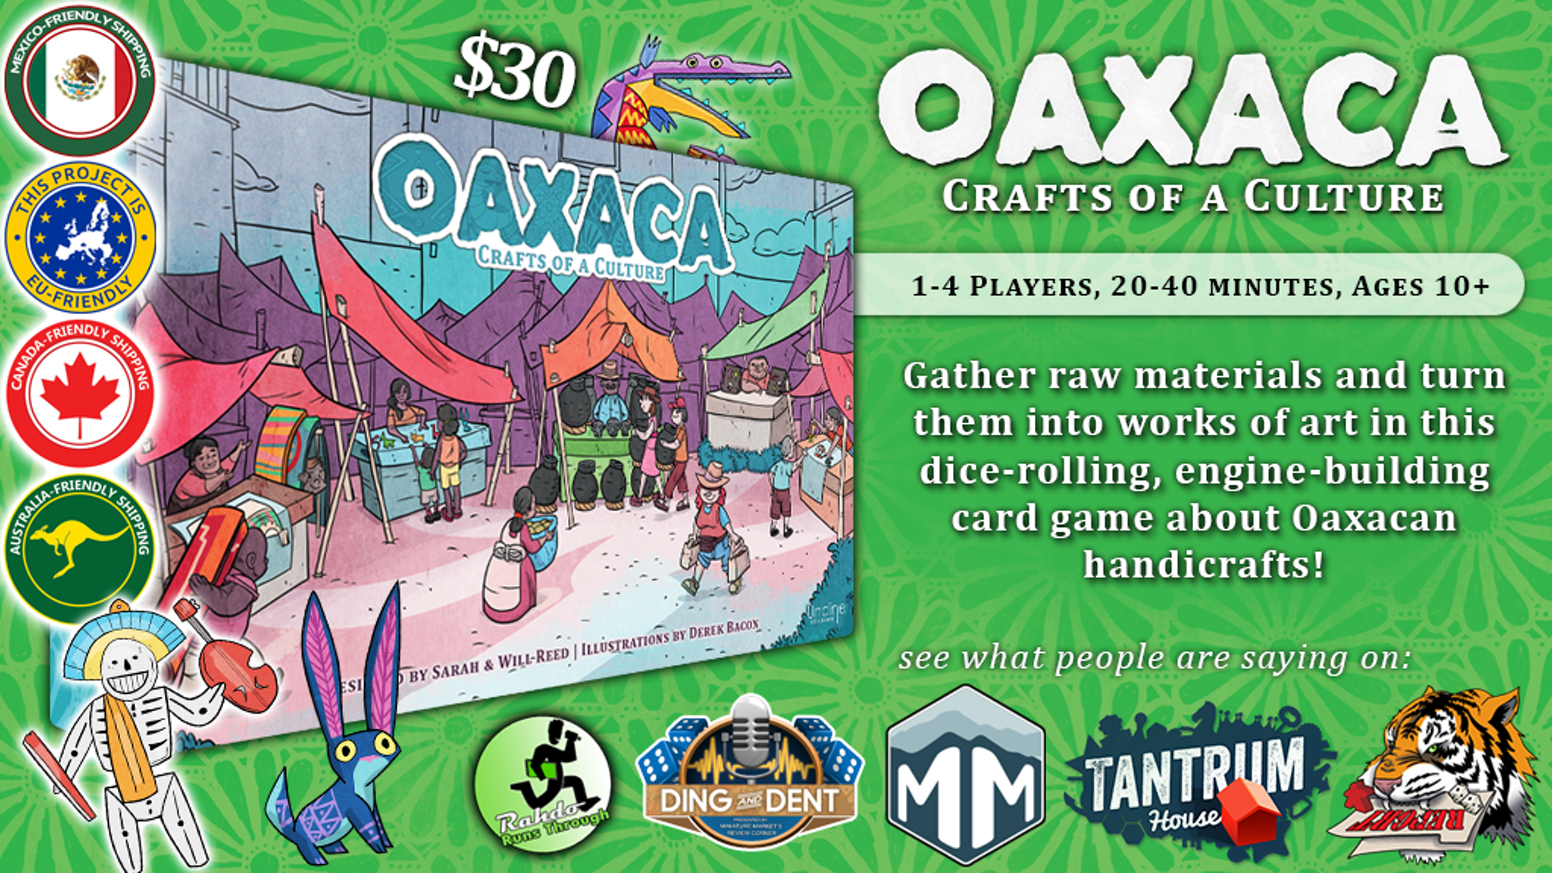 A Dice-rolling, Engine-Building Tabletop Game of Handicrafts for 1-4 players set in beautiful Oaxaca, Mexico.